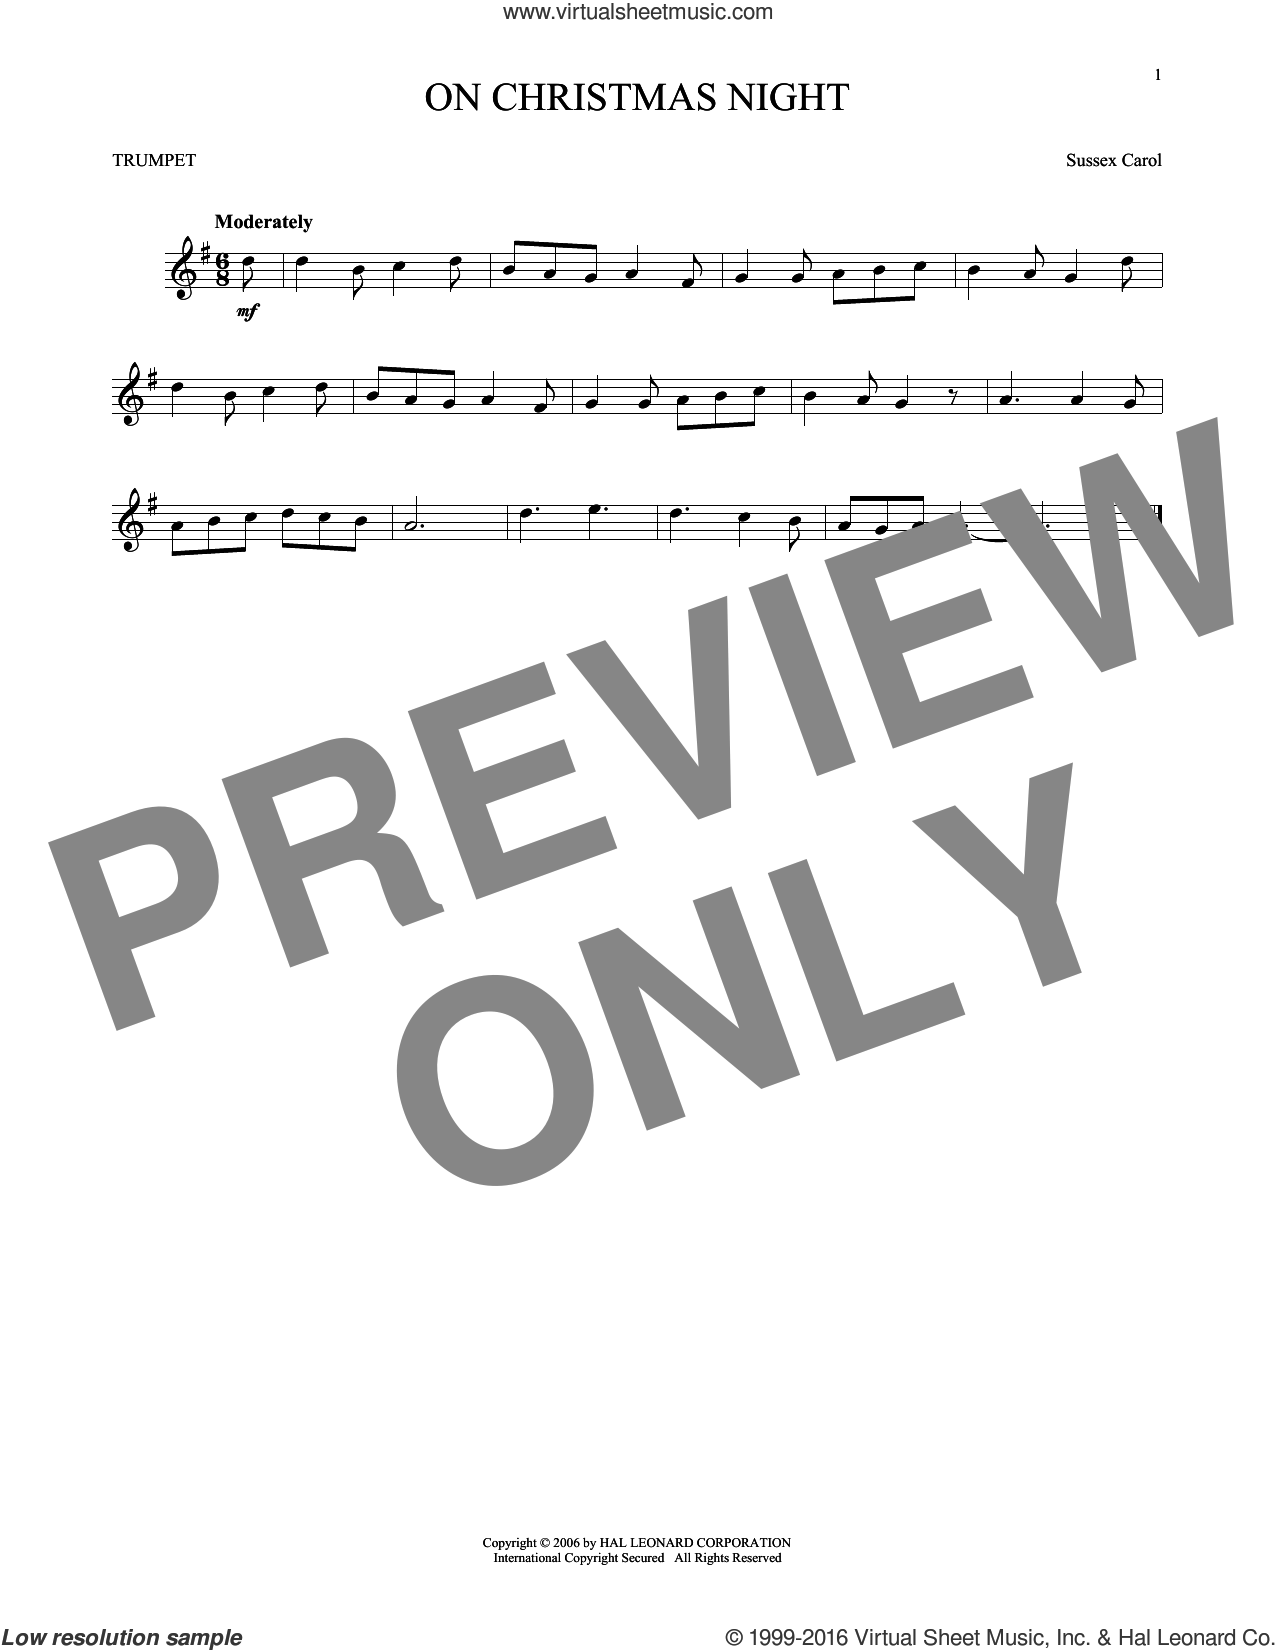 On Christmas Night sheet music for trumpet solo, intermediate skill level